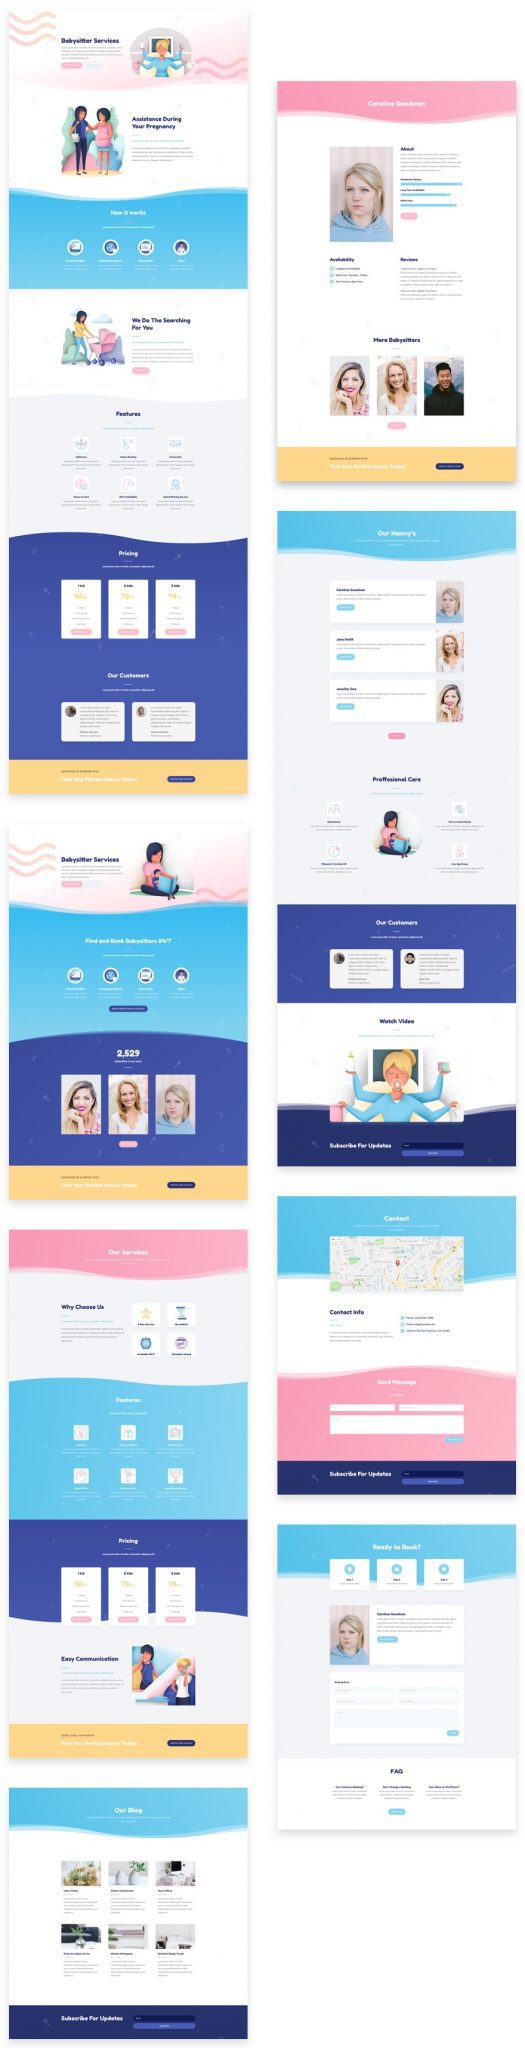 Babysitter Divi Layout Pack